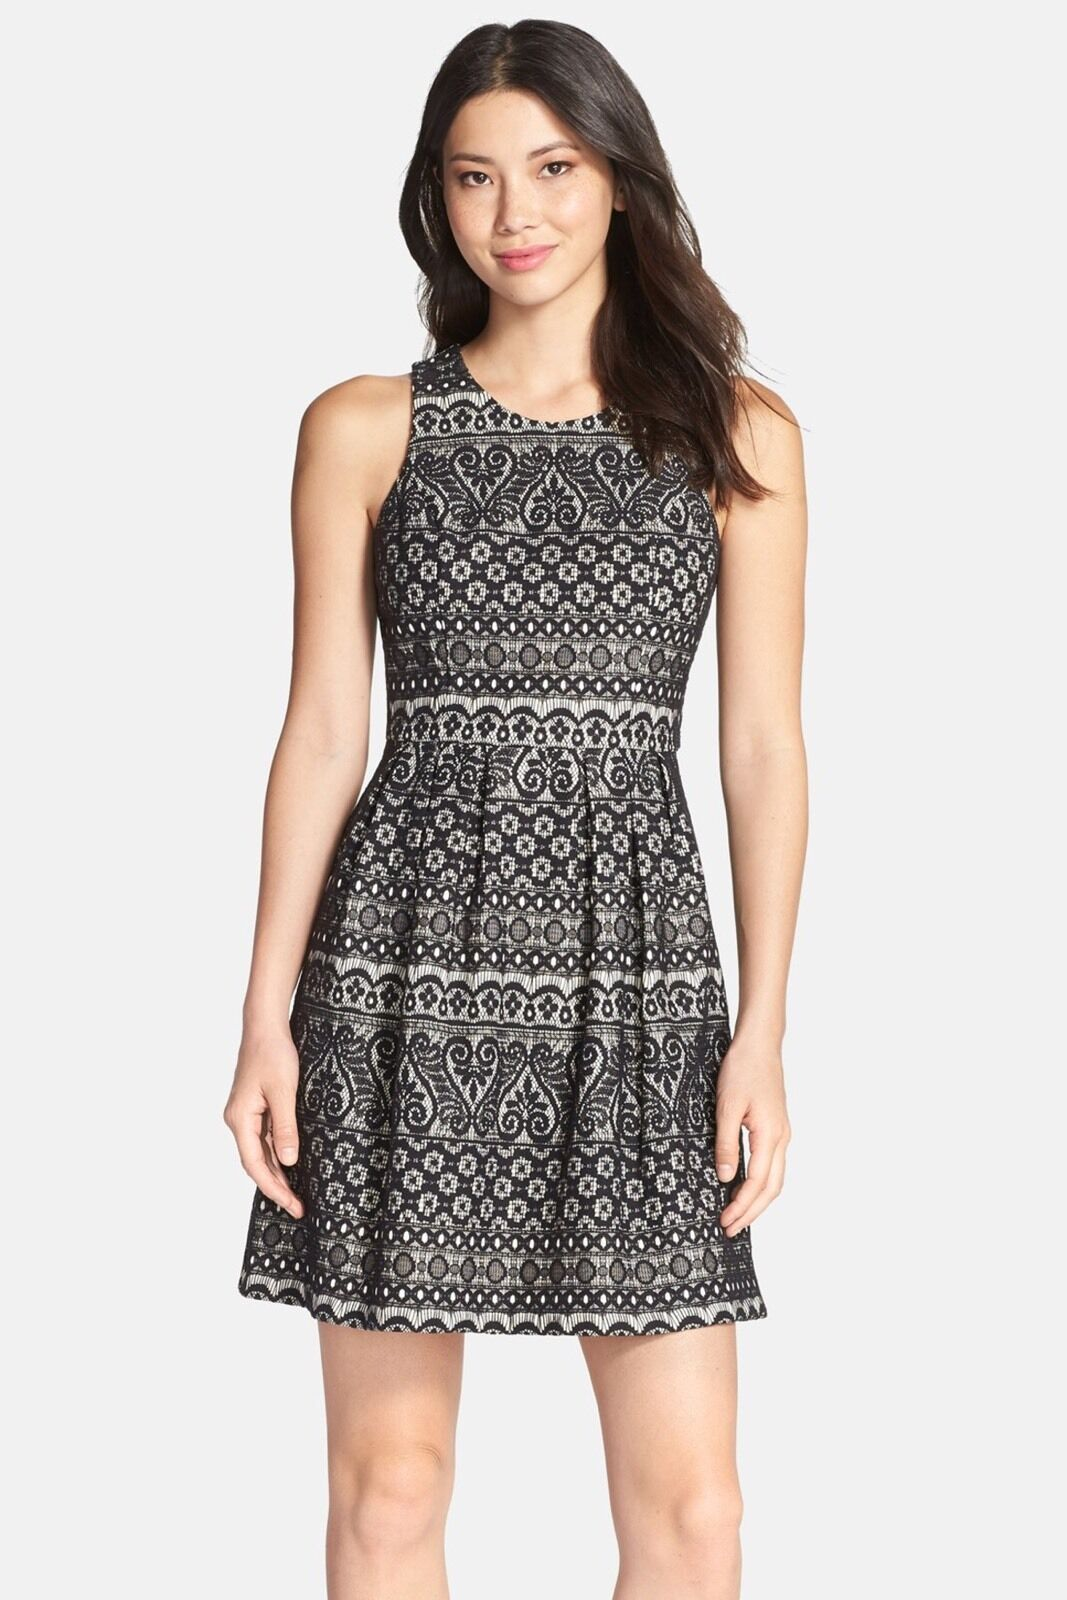 Kaya & Sloane Women's Lace Fit and Flare Dress - Size XS